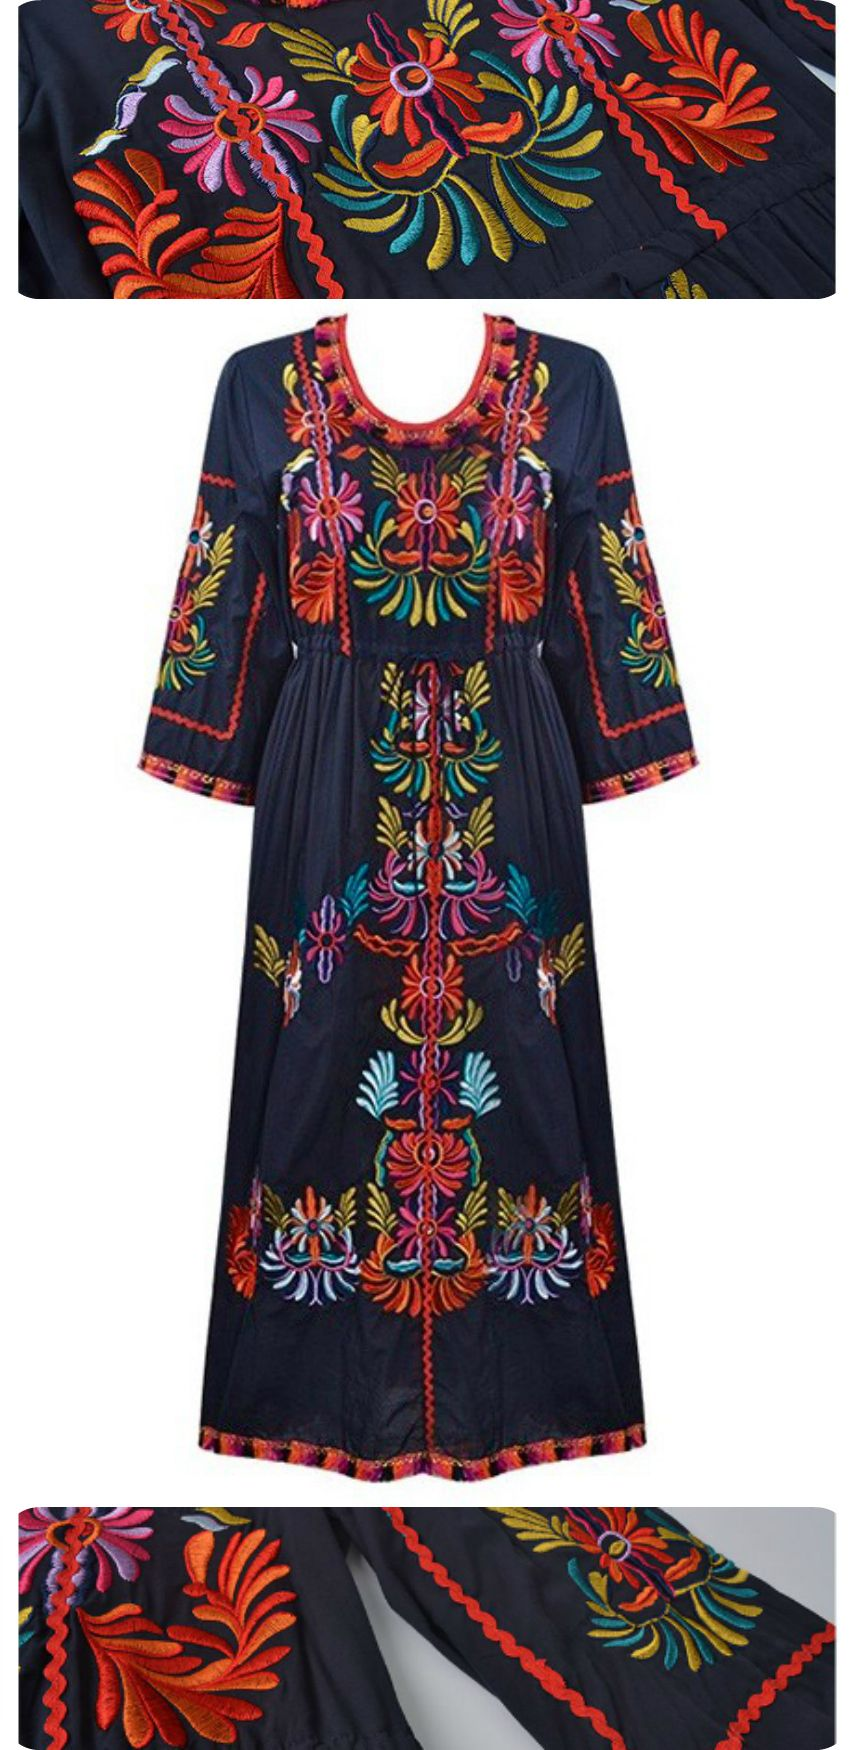 Boho Festive Dress is now available at $79 from Pasaboho. ❤️ This dress exhibit brilliant colours with beautiful embroidered floral patterns. Available for Wholesale and retail. ❤️ :: boho fashion :: gypsy style :: hippie chic :: boho chic :: outfit ideas :: boho clothing :: free spirit :: fashion trend :: embroidered :: flowers :: floral :: lace :: summer :: fabulous :: love :: street style :: fashion style :: boho style :: bohemian :: modern vintage :: embroidery dress :: festival dress